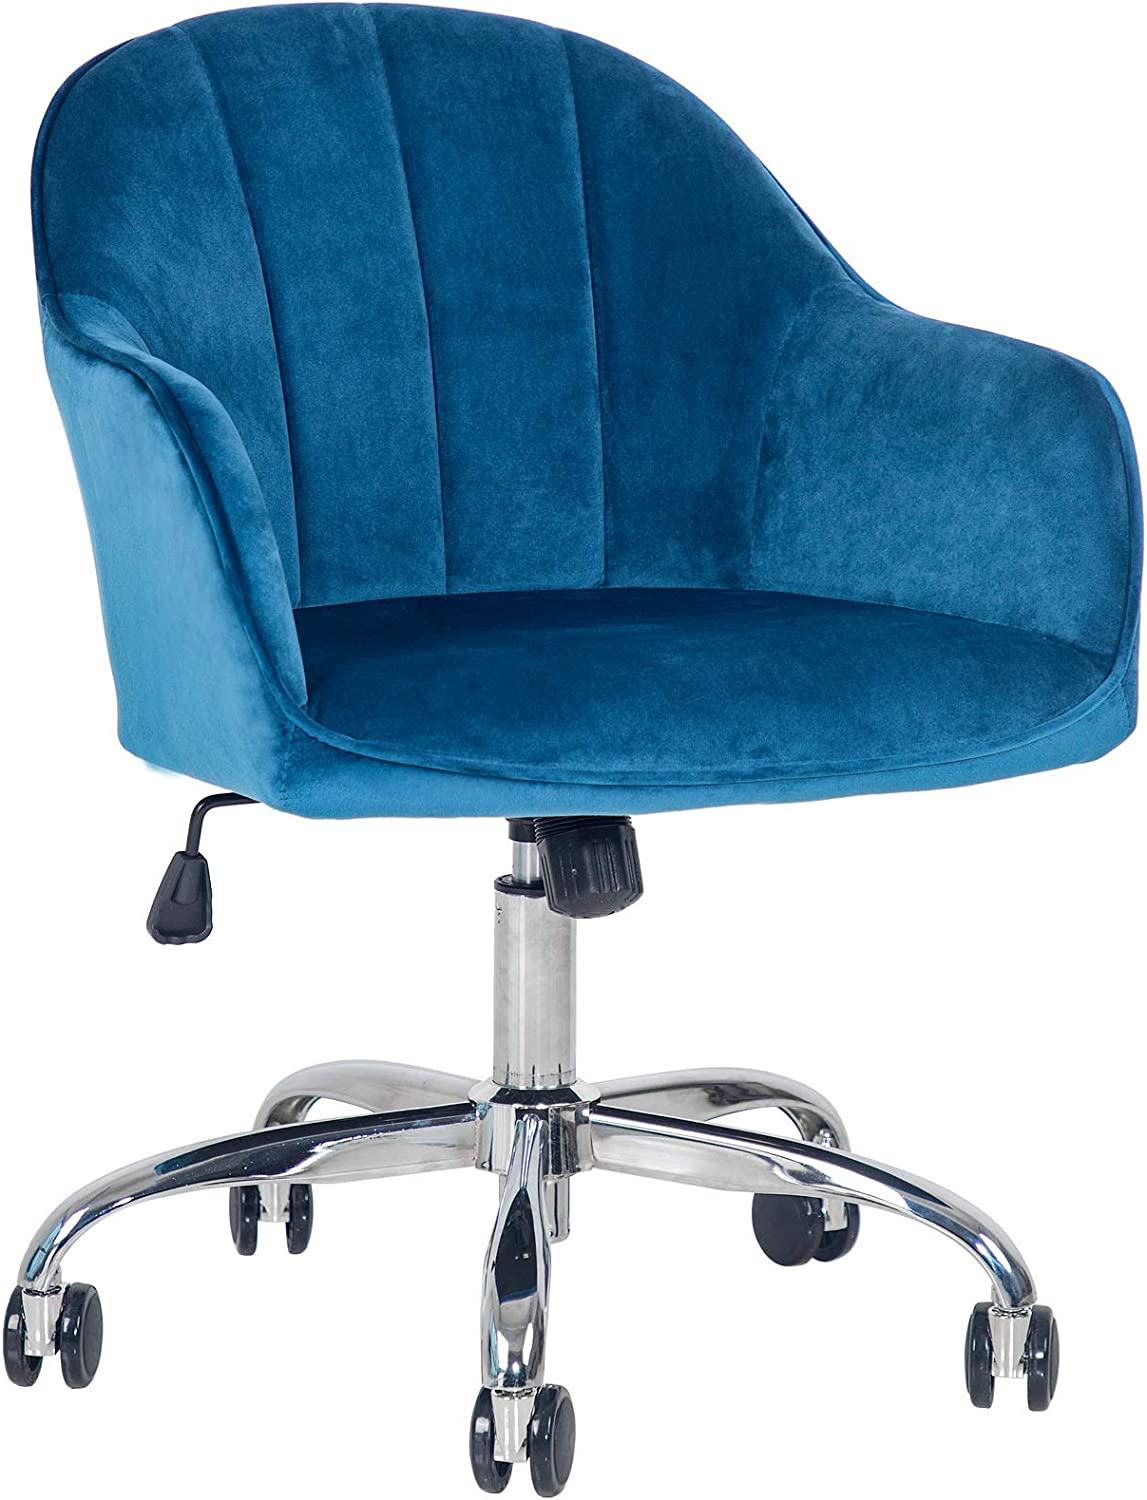 J&L Furniture Modern Design Velvet Desk Chair Mid-Back Home Office Chair Swivel Adjustable Task Chair Executive Accent Chair with Soft Seat (Blue)